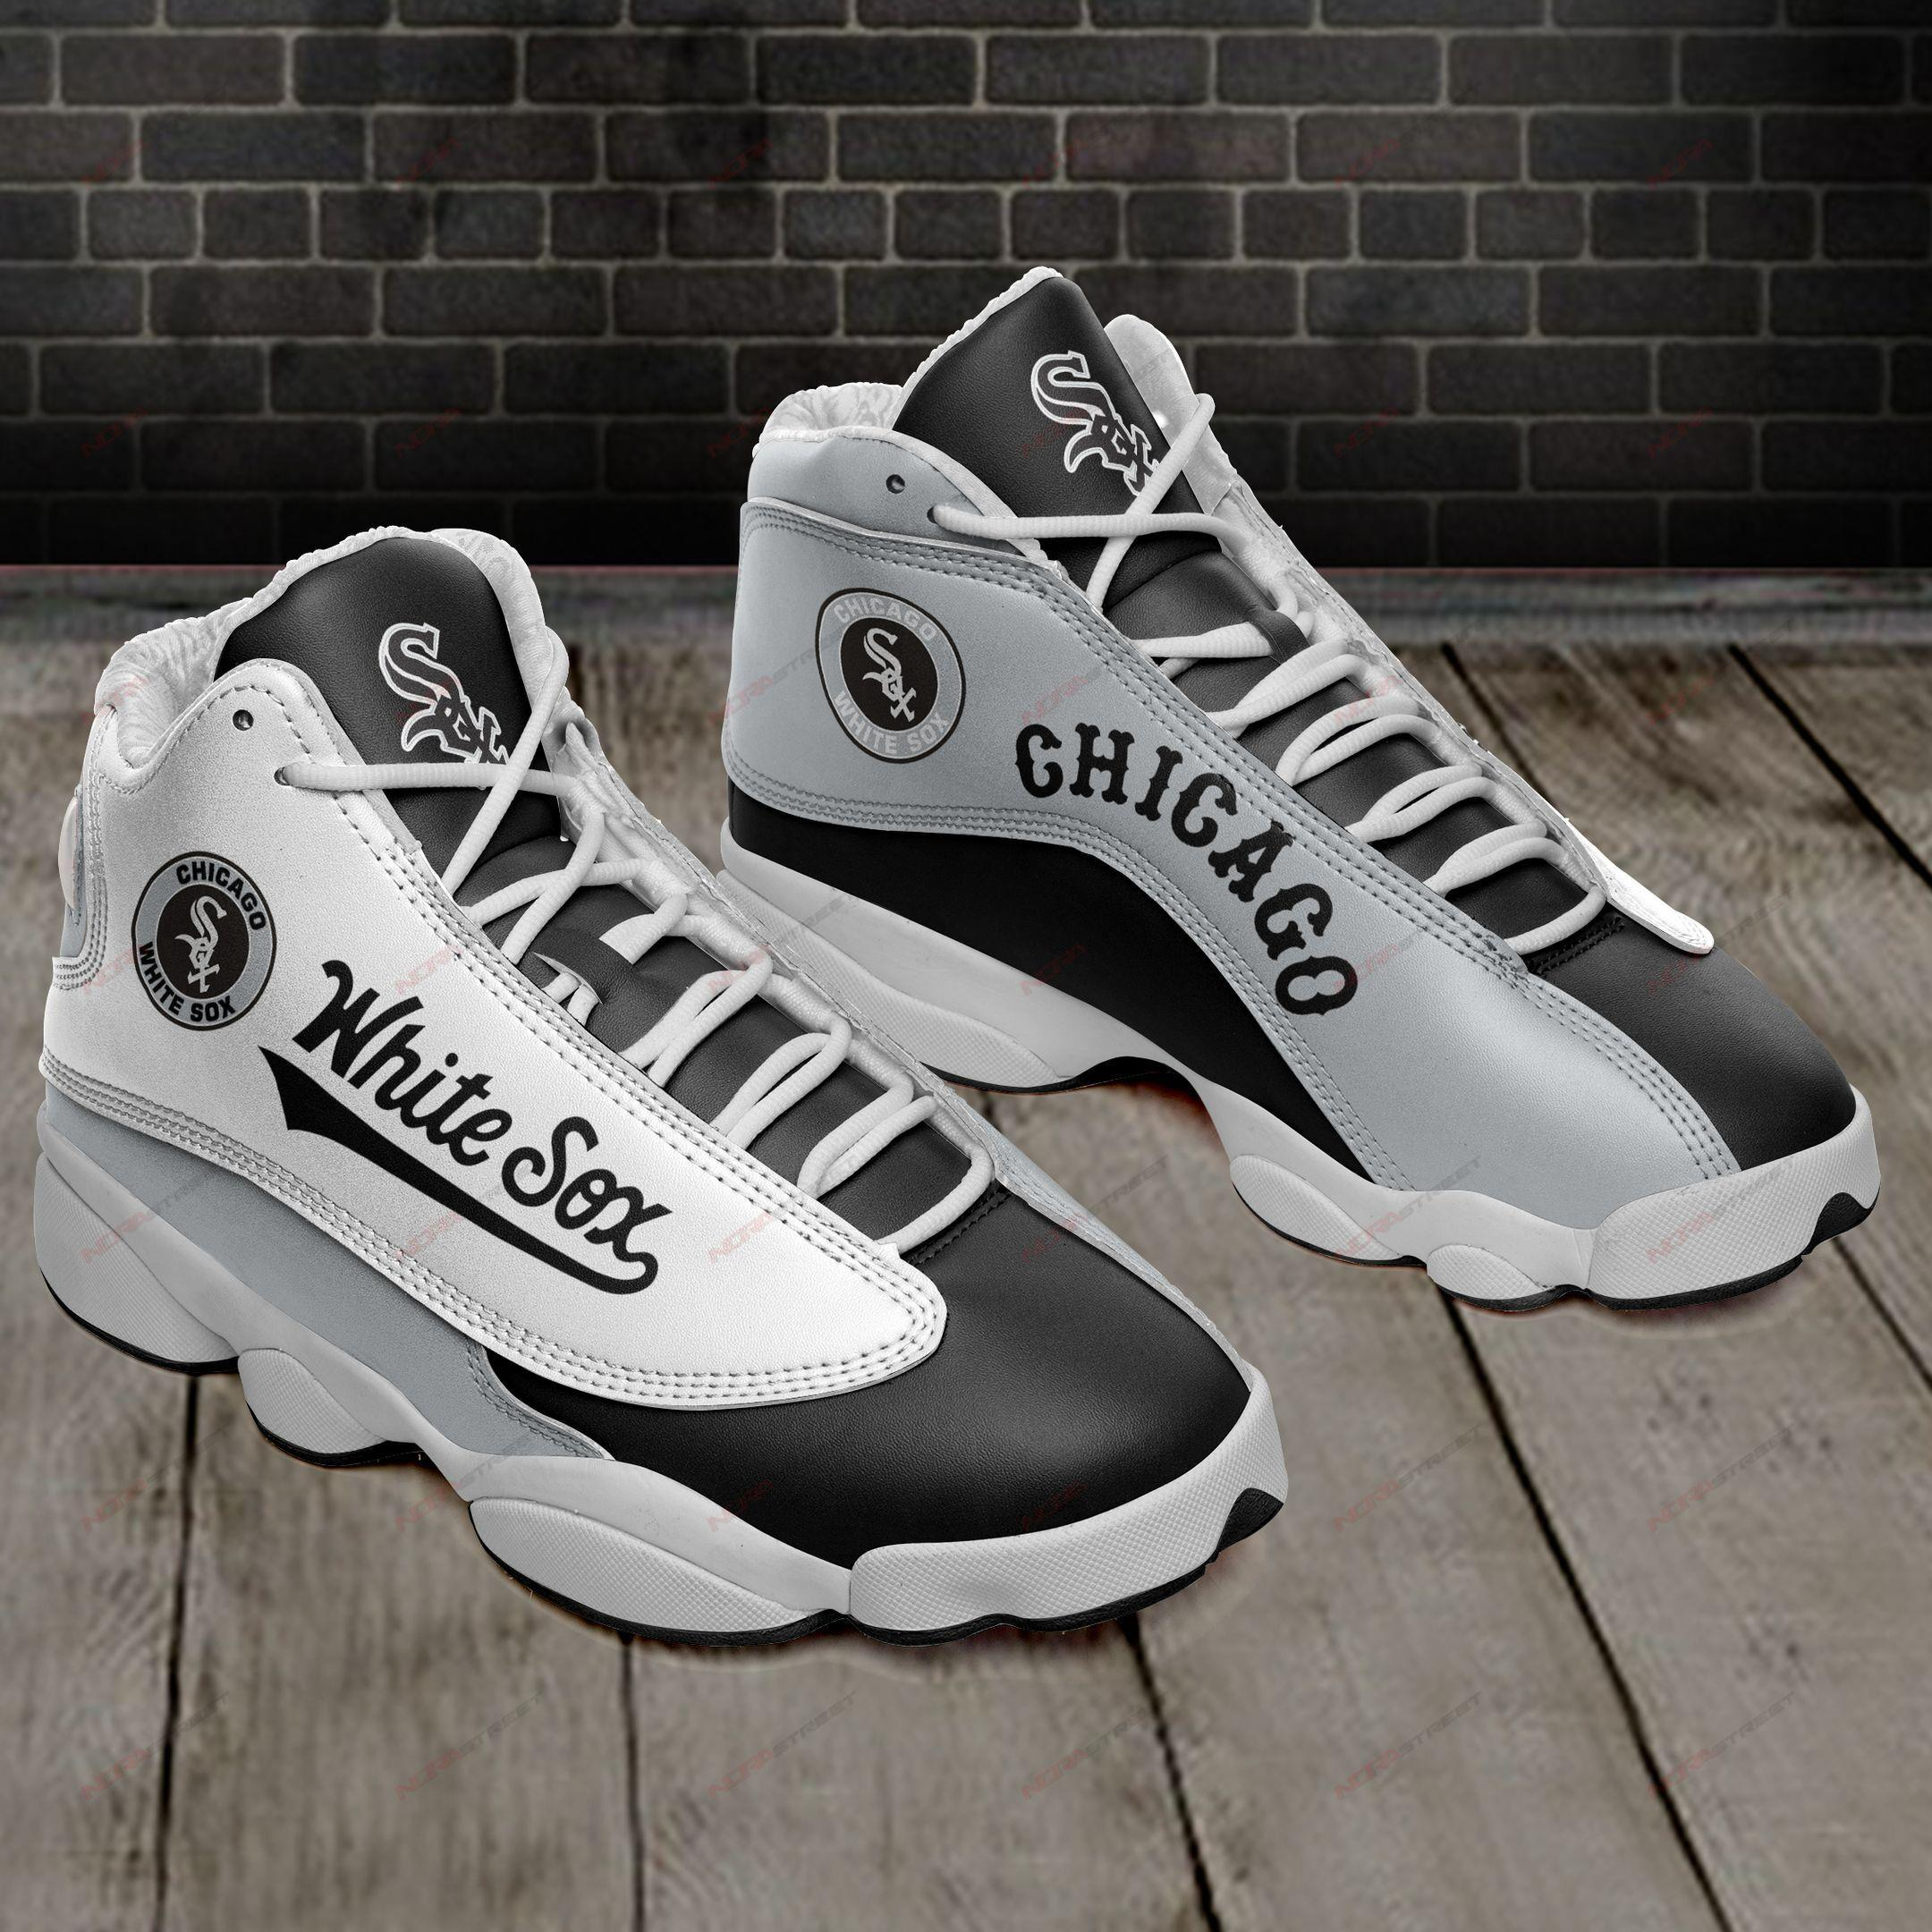 Chicago White Sox Air Jordan 13 Sneakers Sport Shoes Full Size